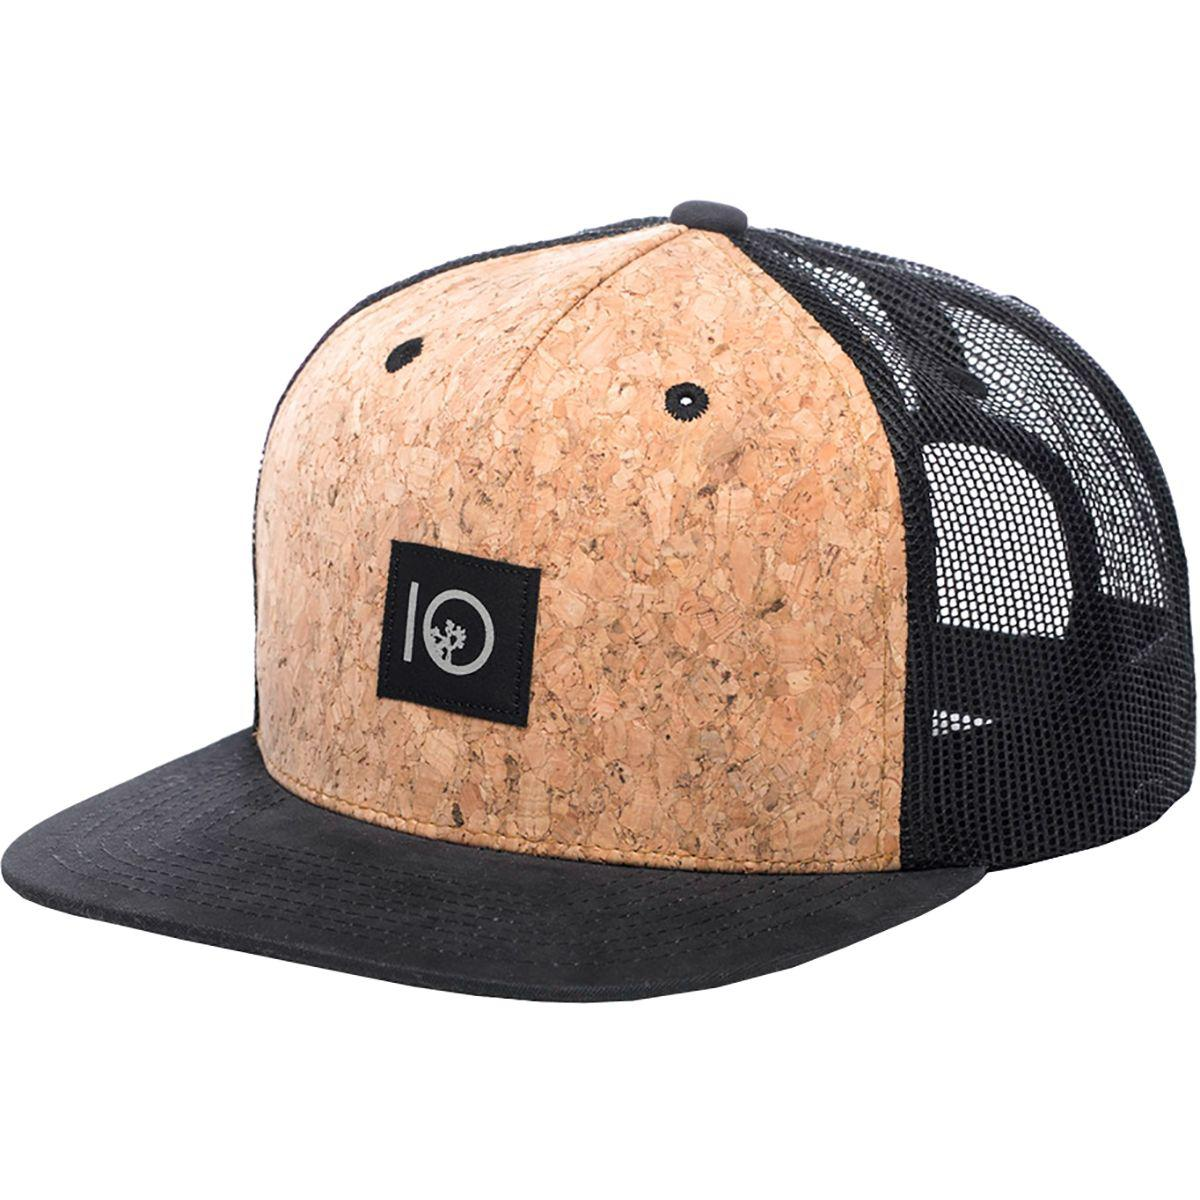 first rate 91f23 1f31e discount lyst tentree natures playground trucker hat for men 7b429 61216